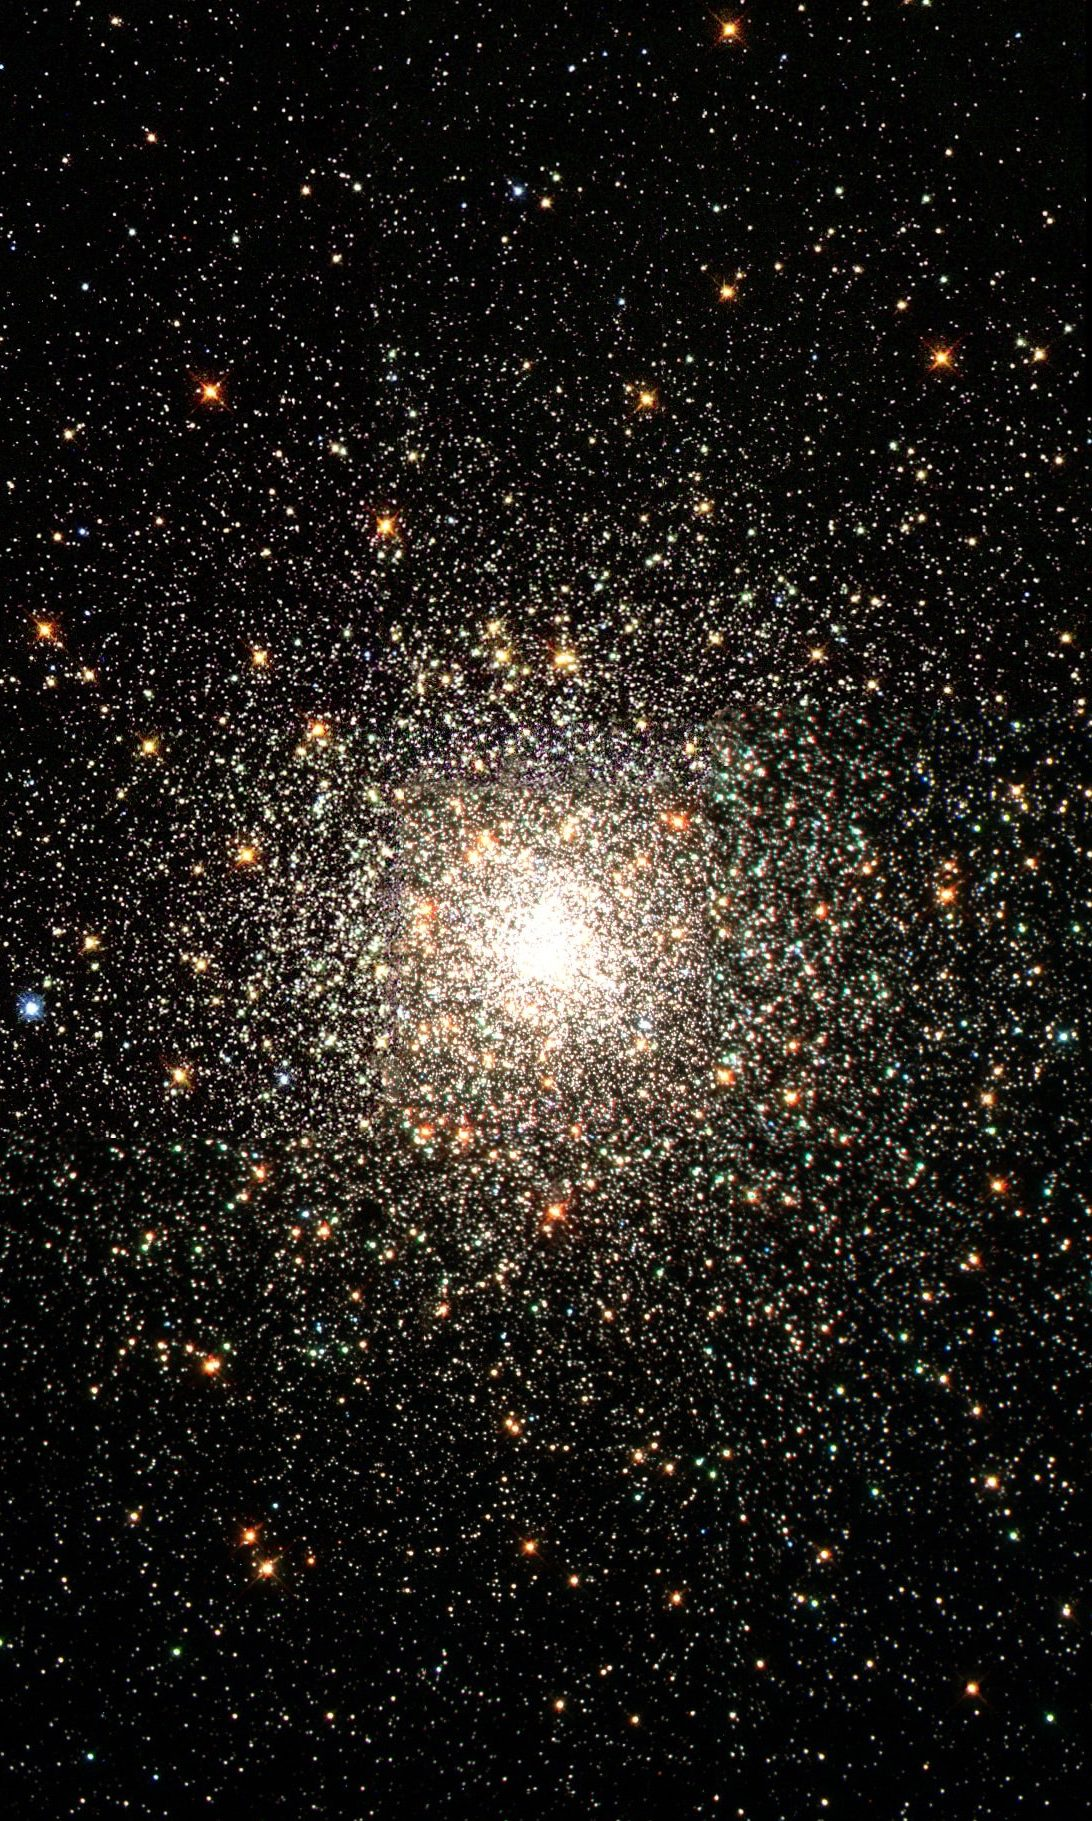 stars clustering together into one bright spot of light